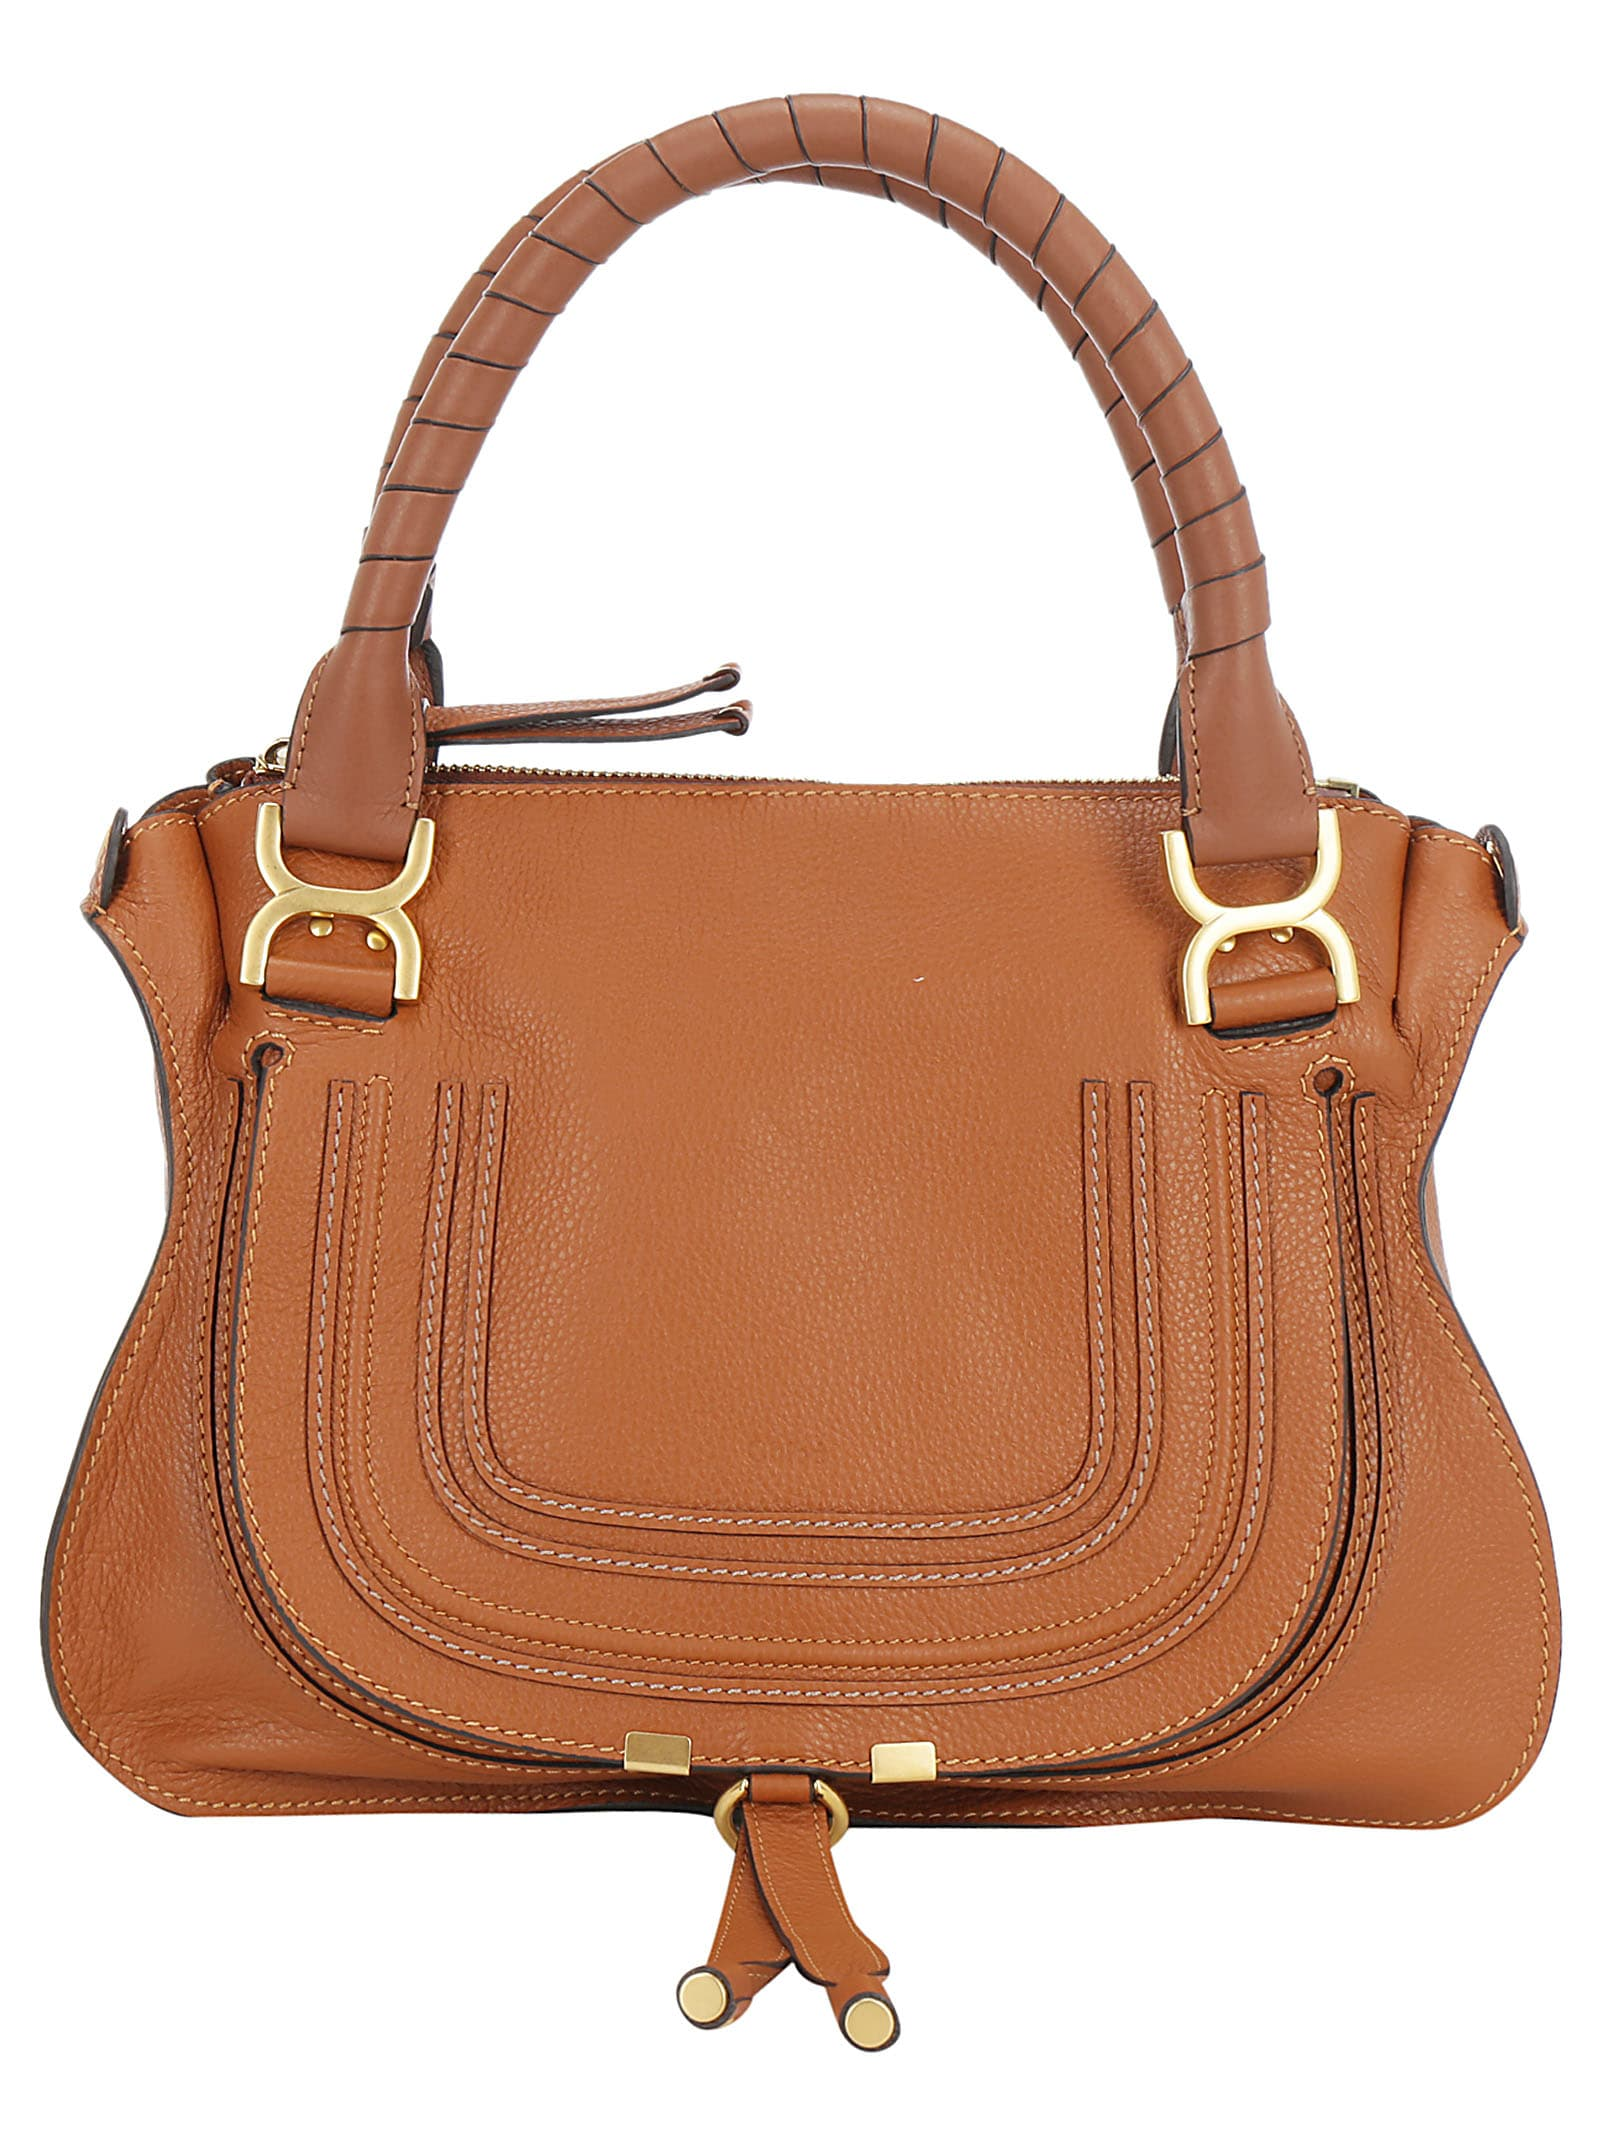 Tan Calfskin Hand Bag by Chloé, featuring two round handles, zip closure on top, removable shoulder strap, front flap with open pocket under it, internal compartment with zip pocket and open pocket. Composition: 100% Calf Leather Bos Taurus